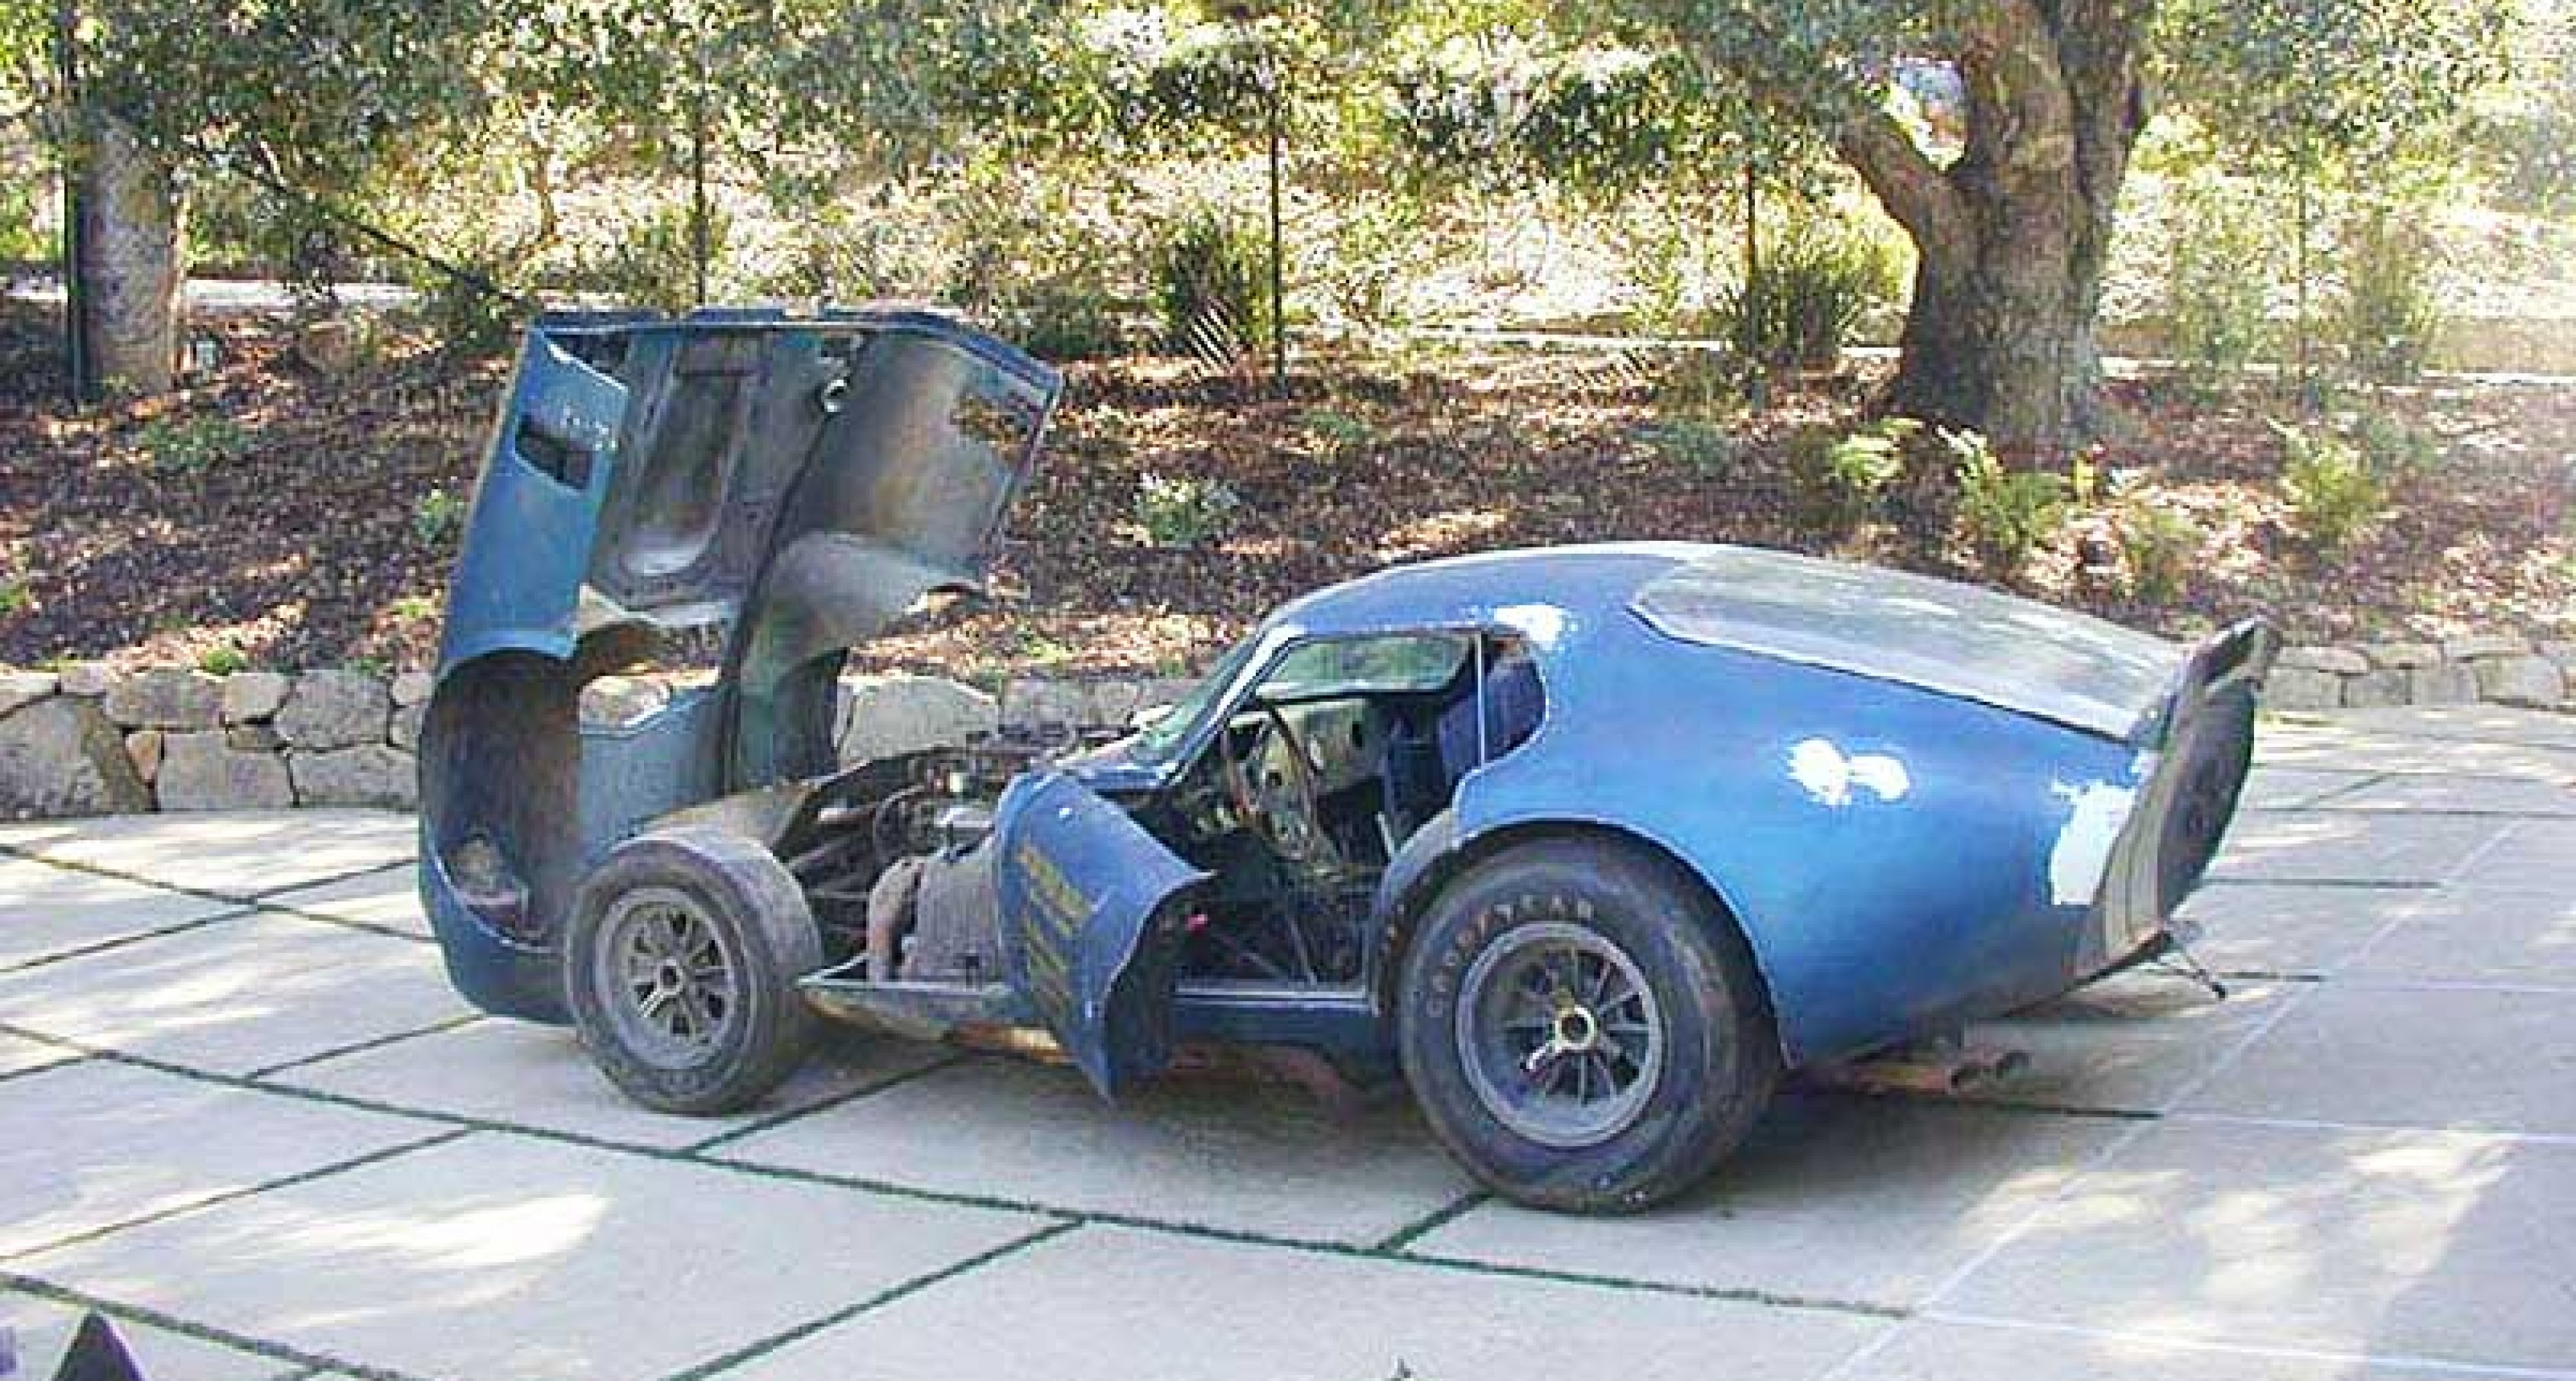 The Most Spectacular Automotive Finds Of All Time